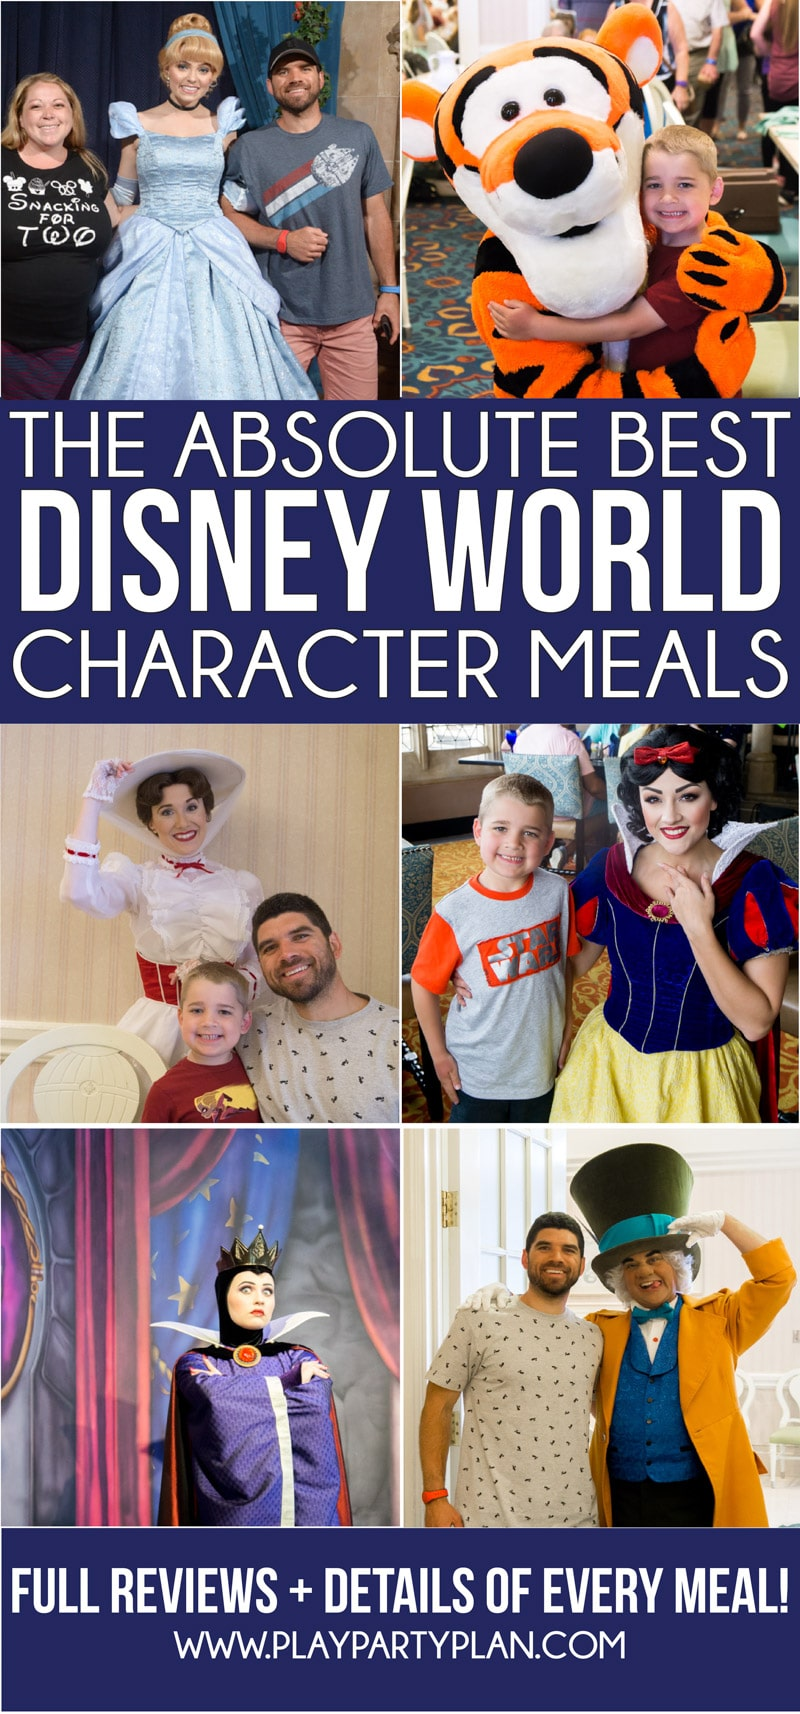 The ultimate guide to Disney World character dining updated for 2019! A list of best places to get breakfast, which resorts have character meals, best for families, and more! And individual reviews of every single Disney character meal! via @playpartyplan